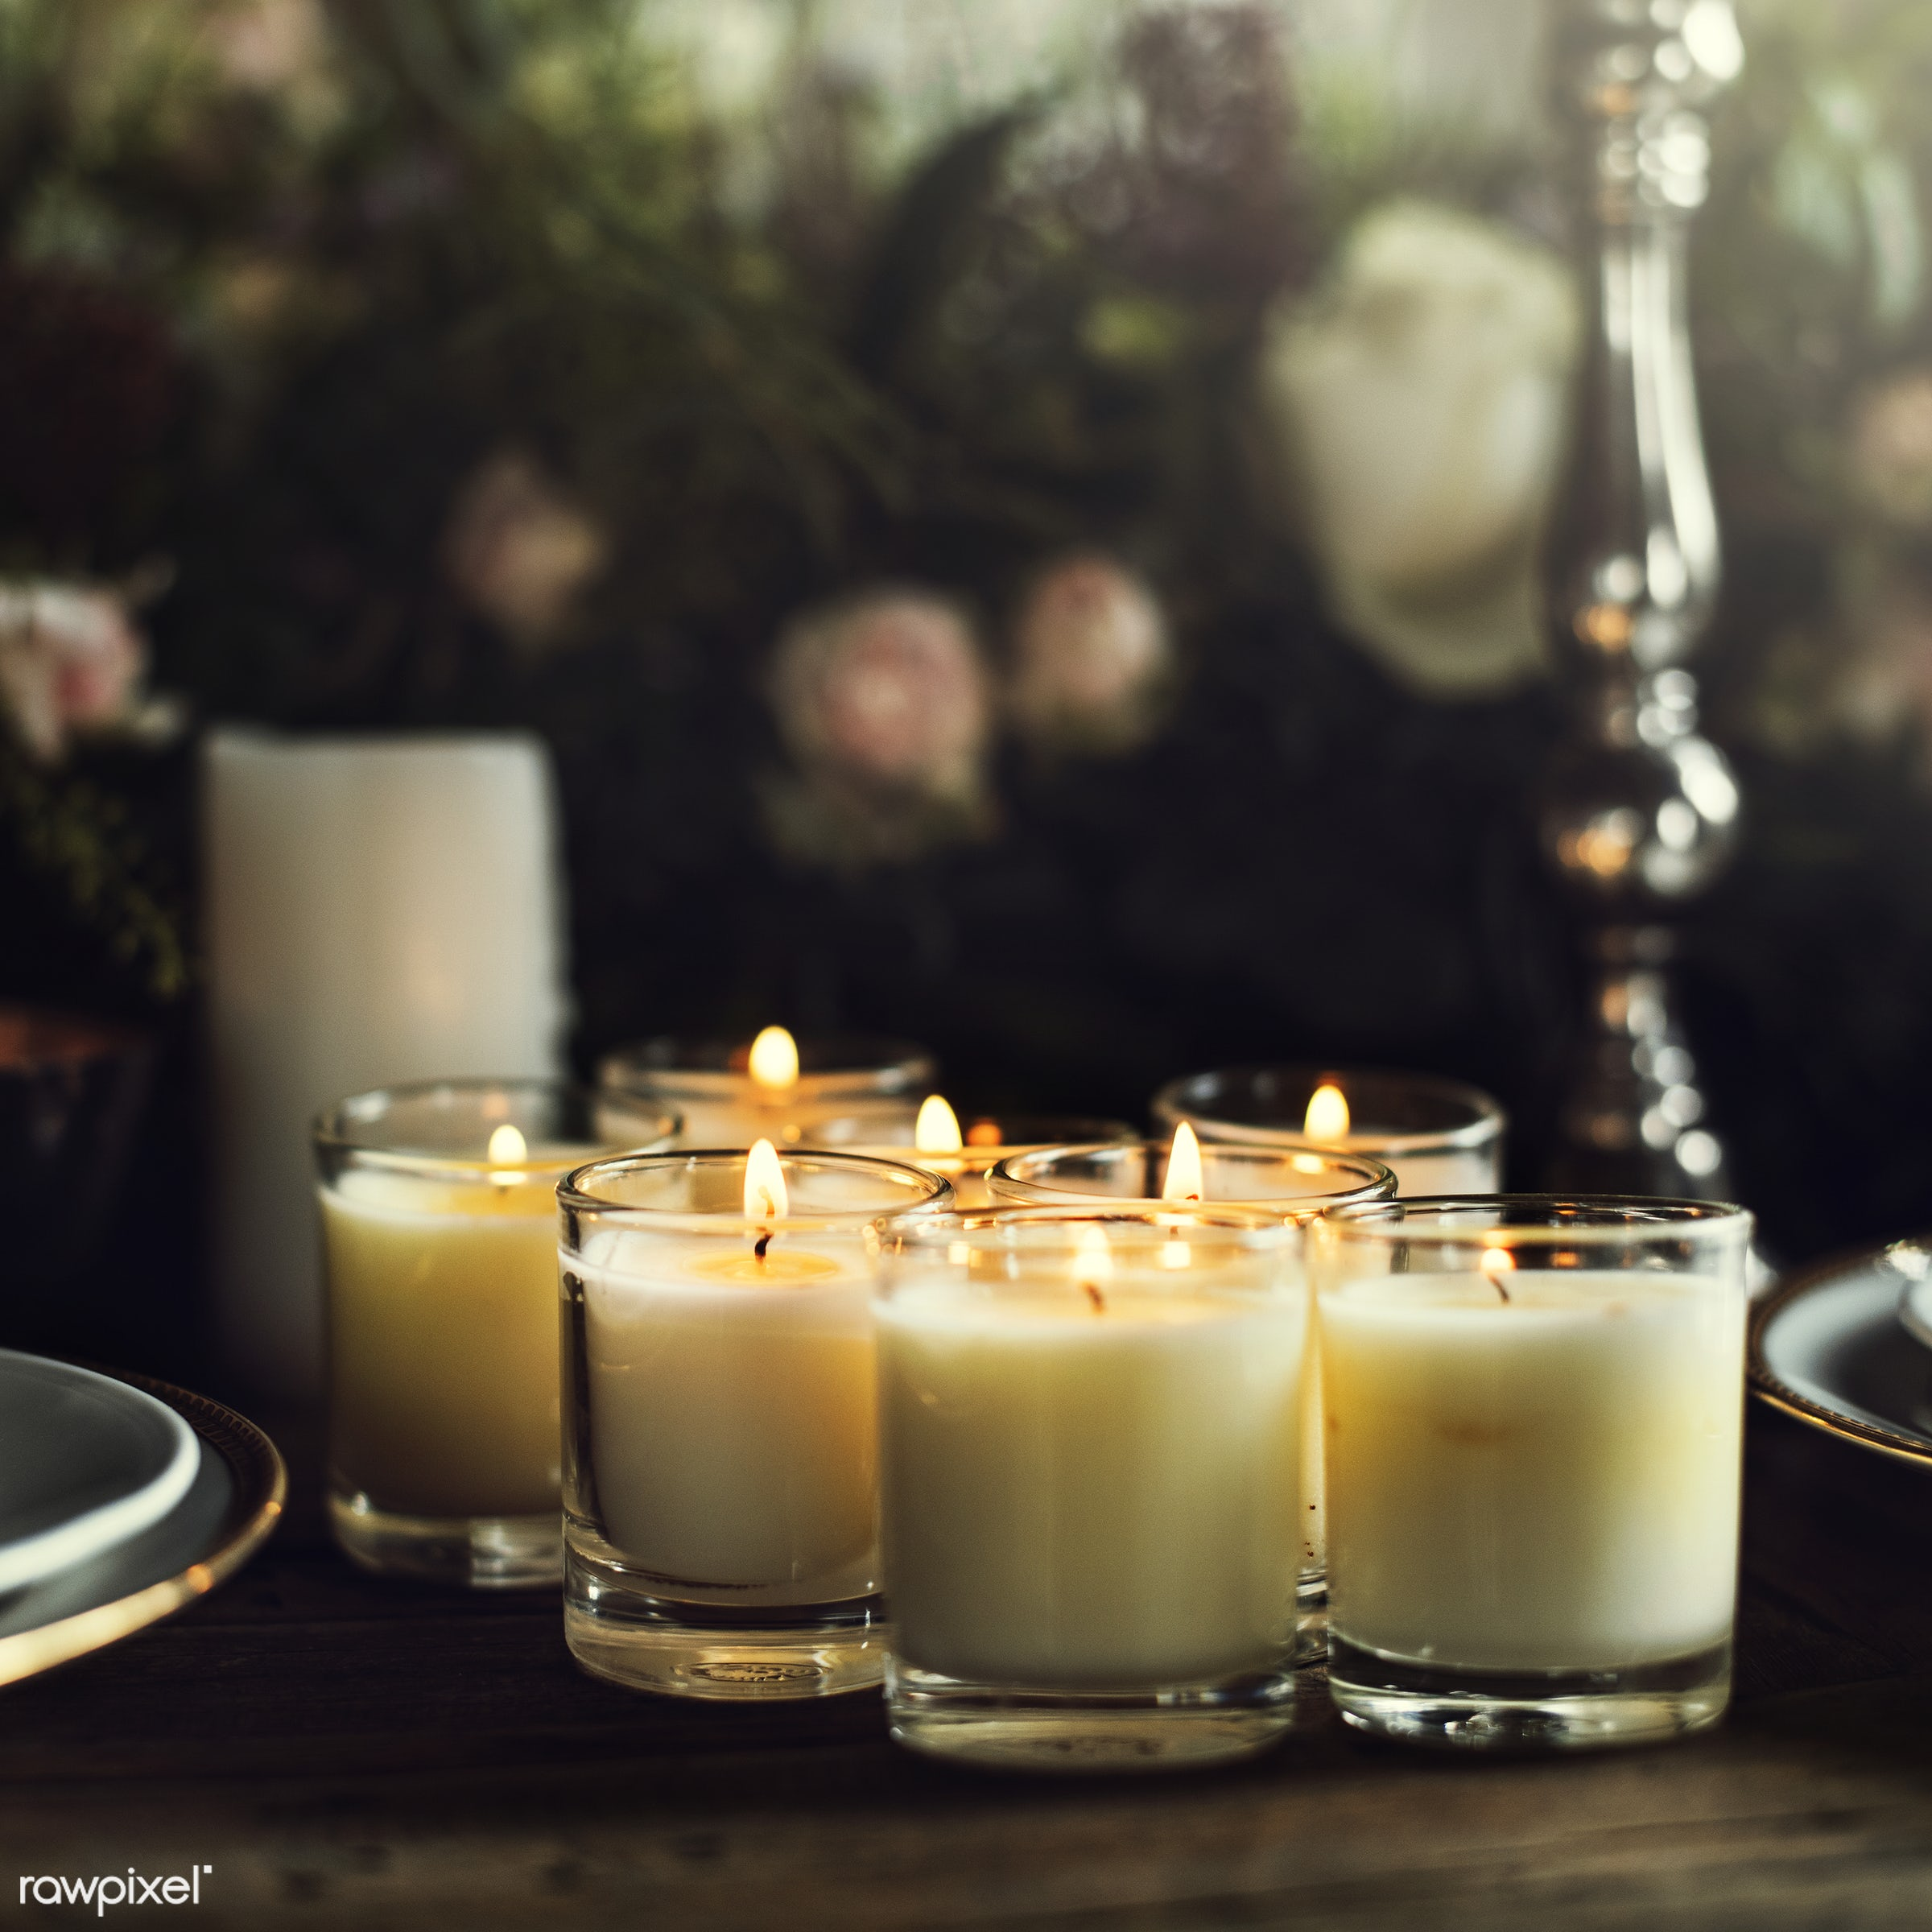 nobody, fancy, catering, set, silverware, restaurant, party, setting, tablecloth, dining table, event, candles, banquet,...